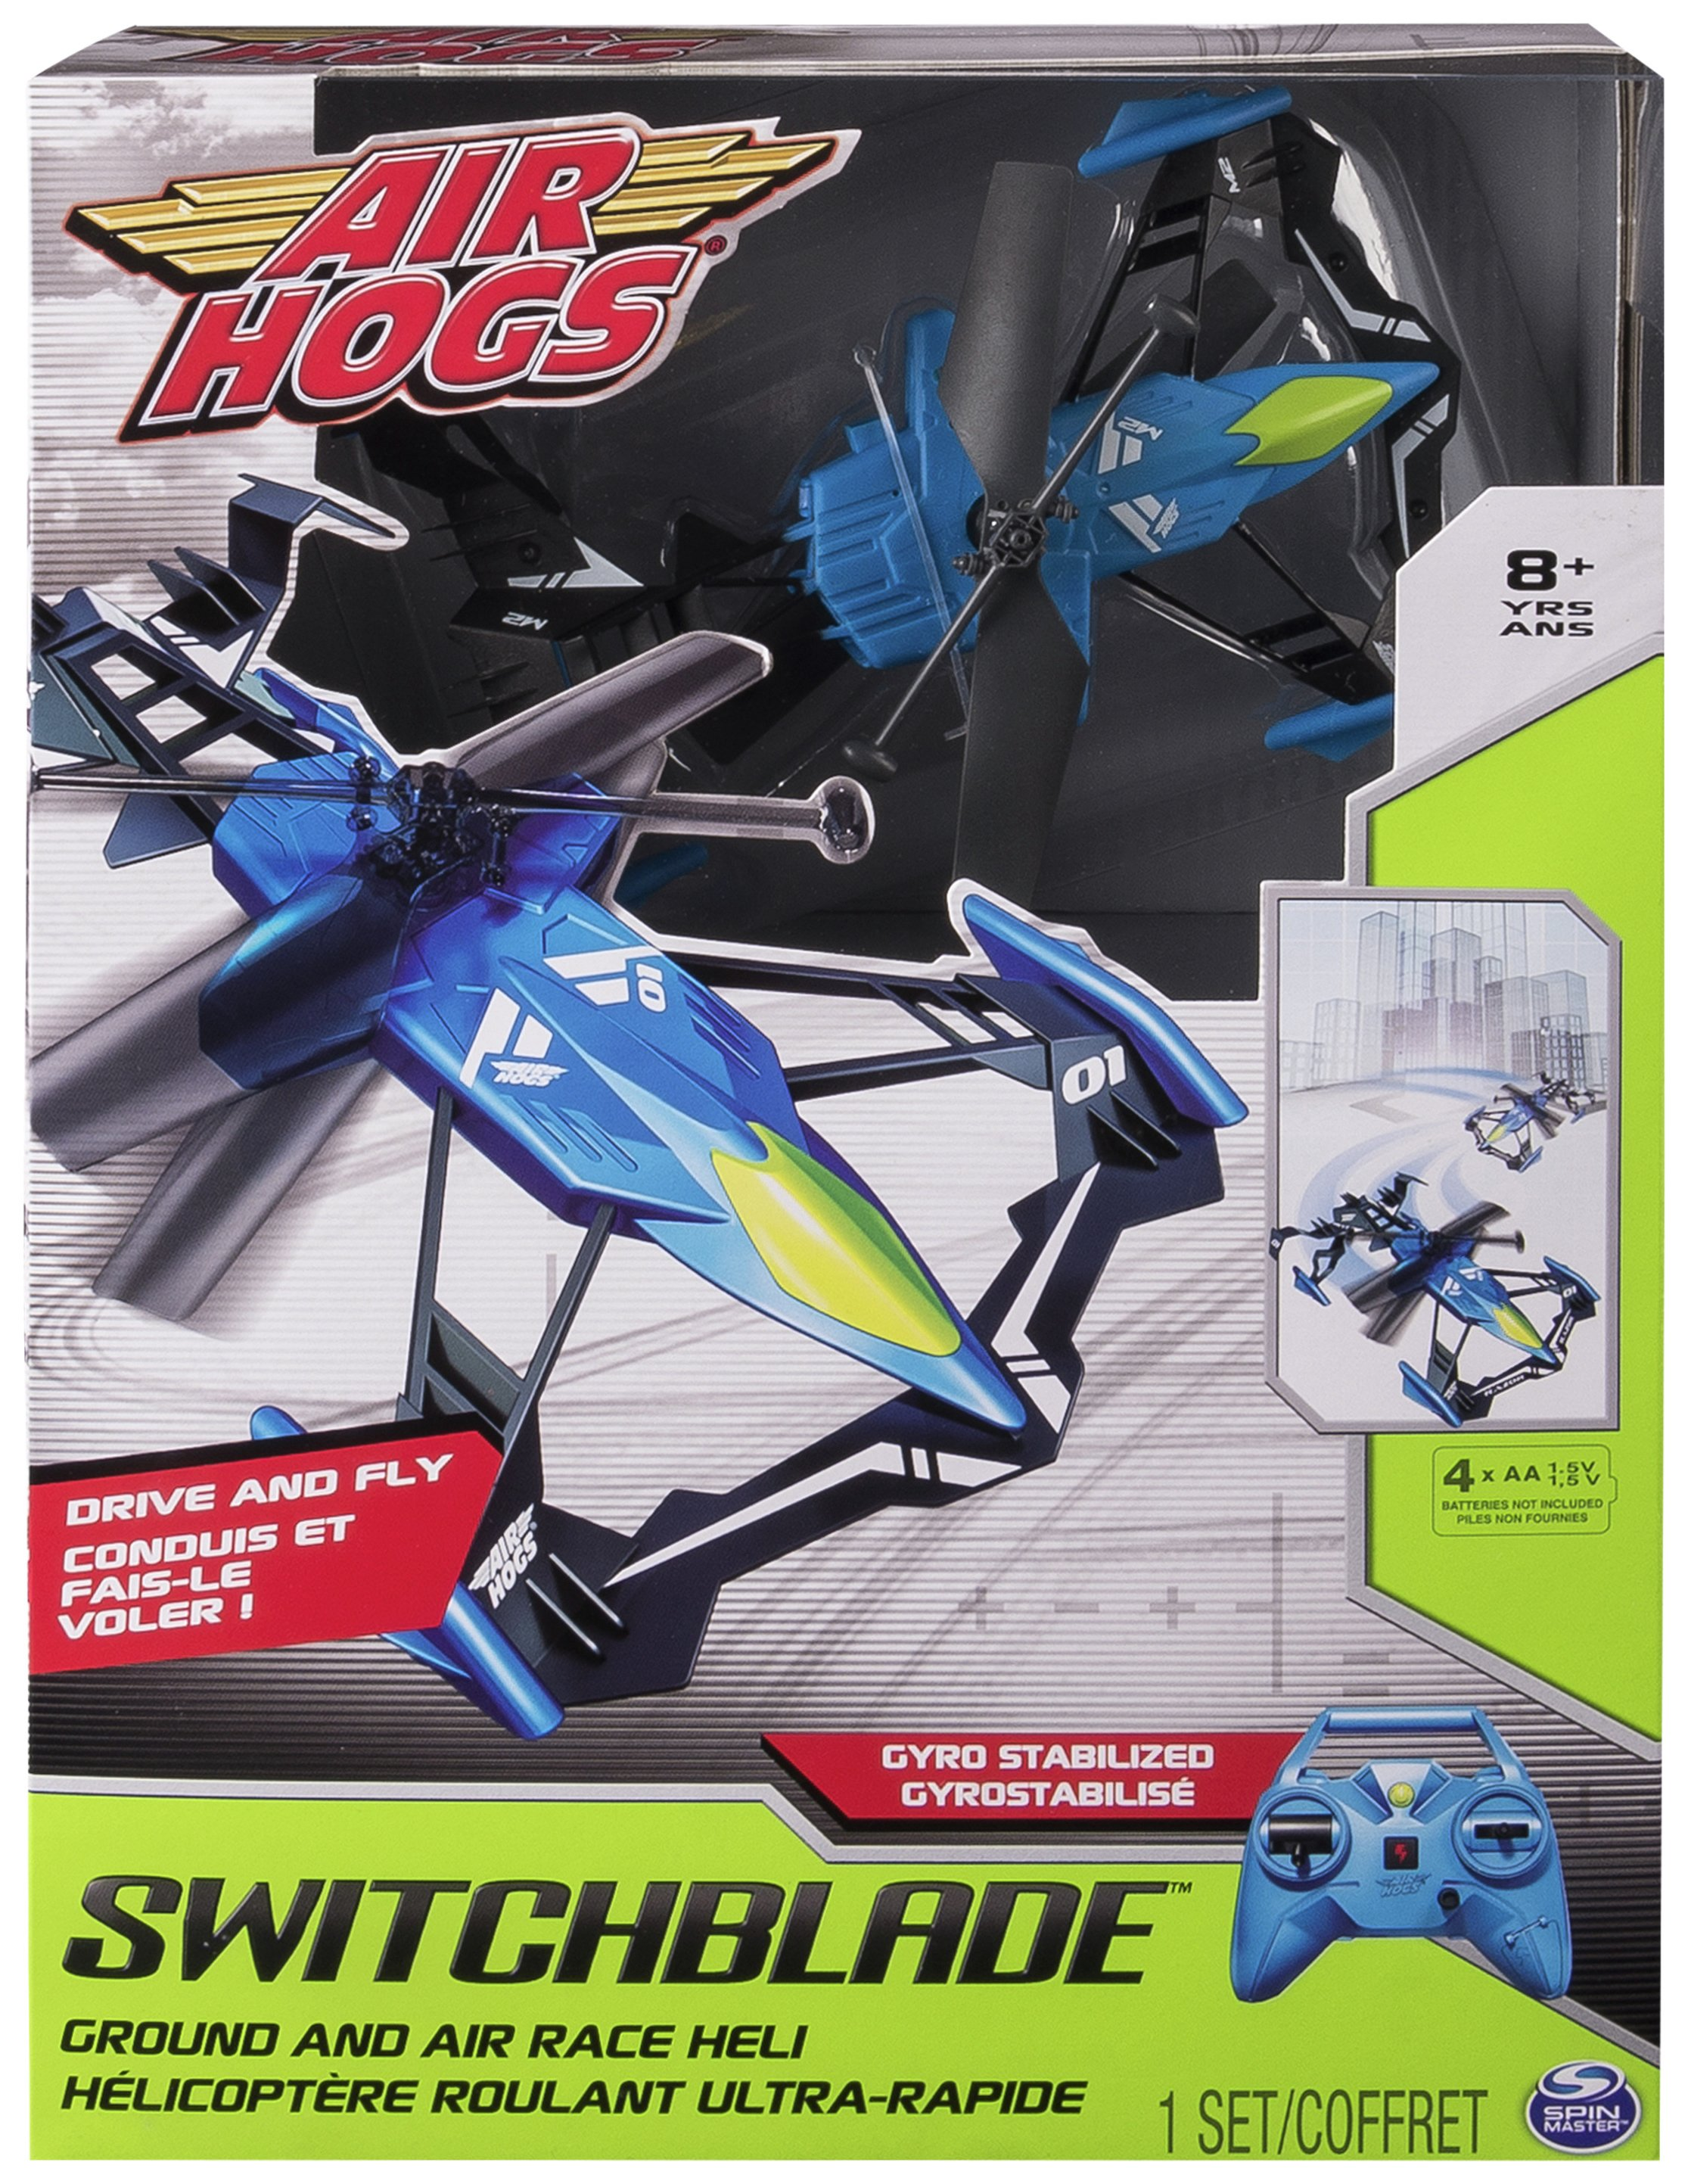 Image of Radio Controlled Air Hogs Switchblade